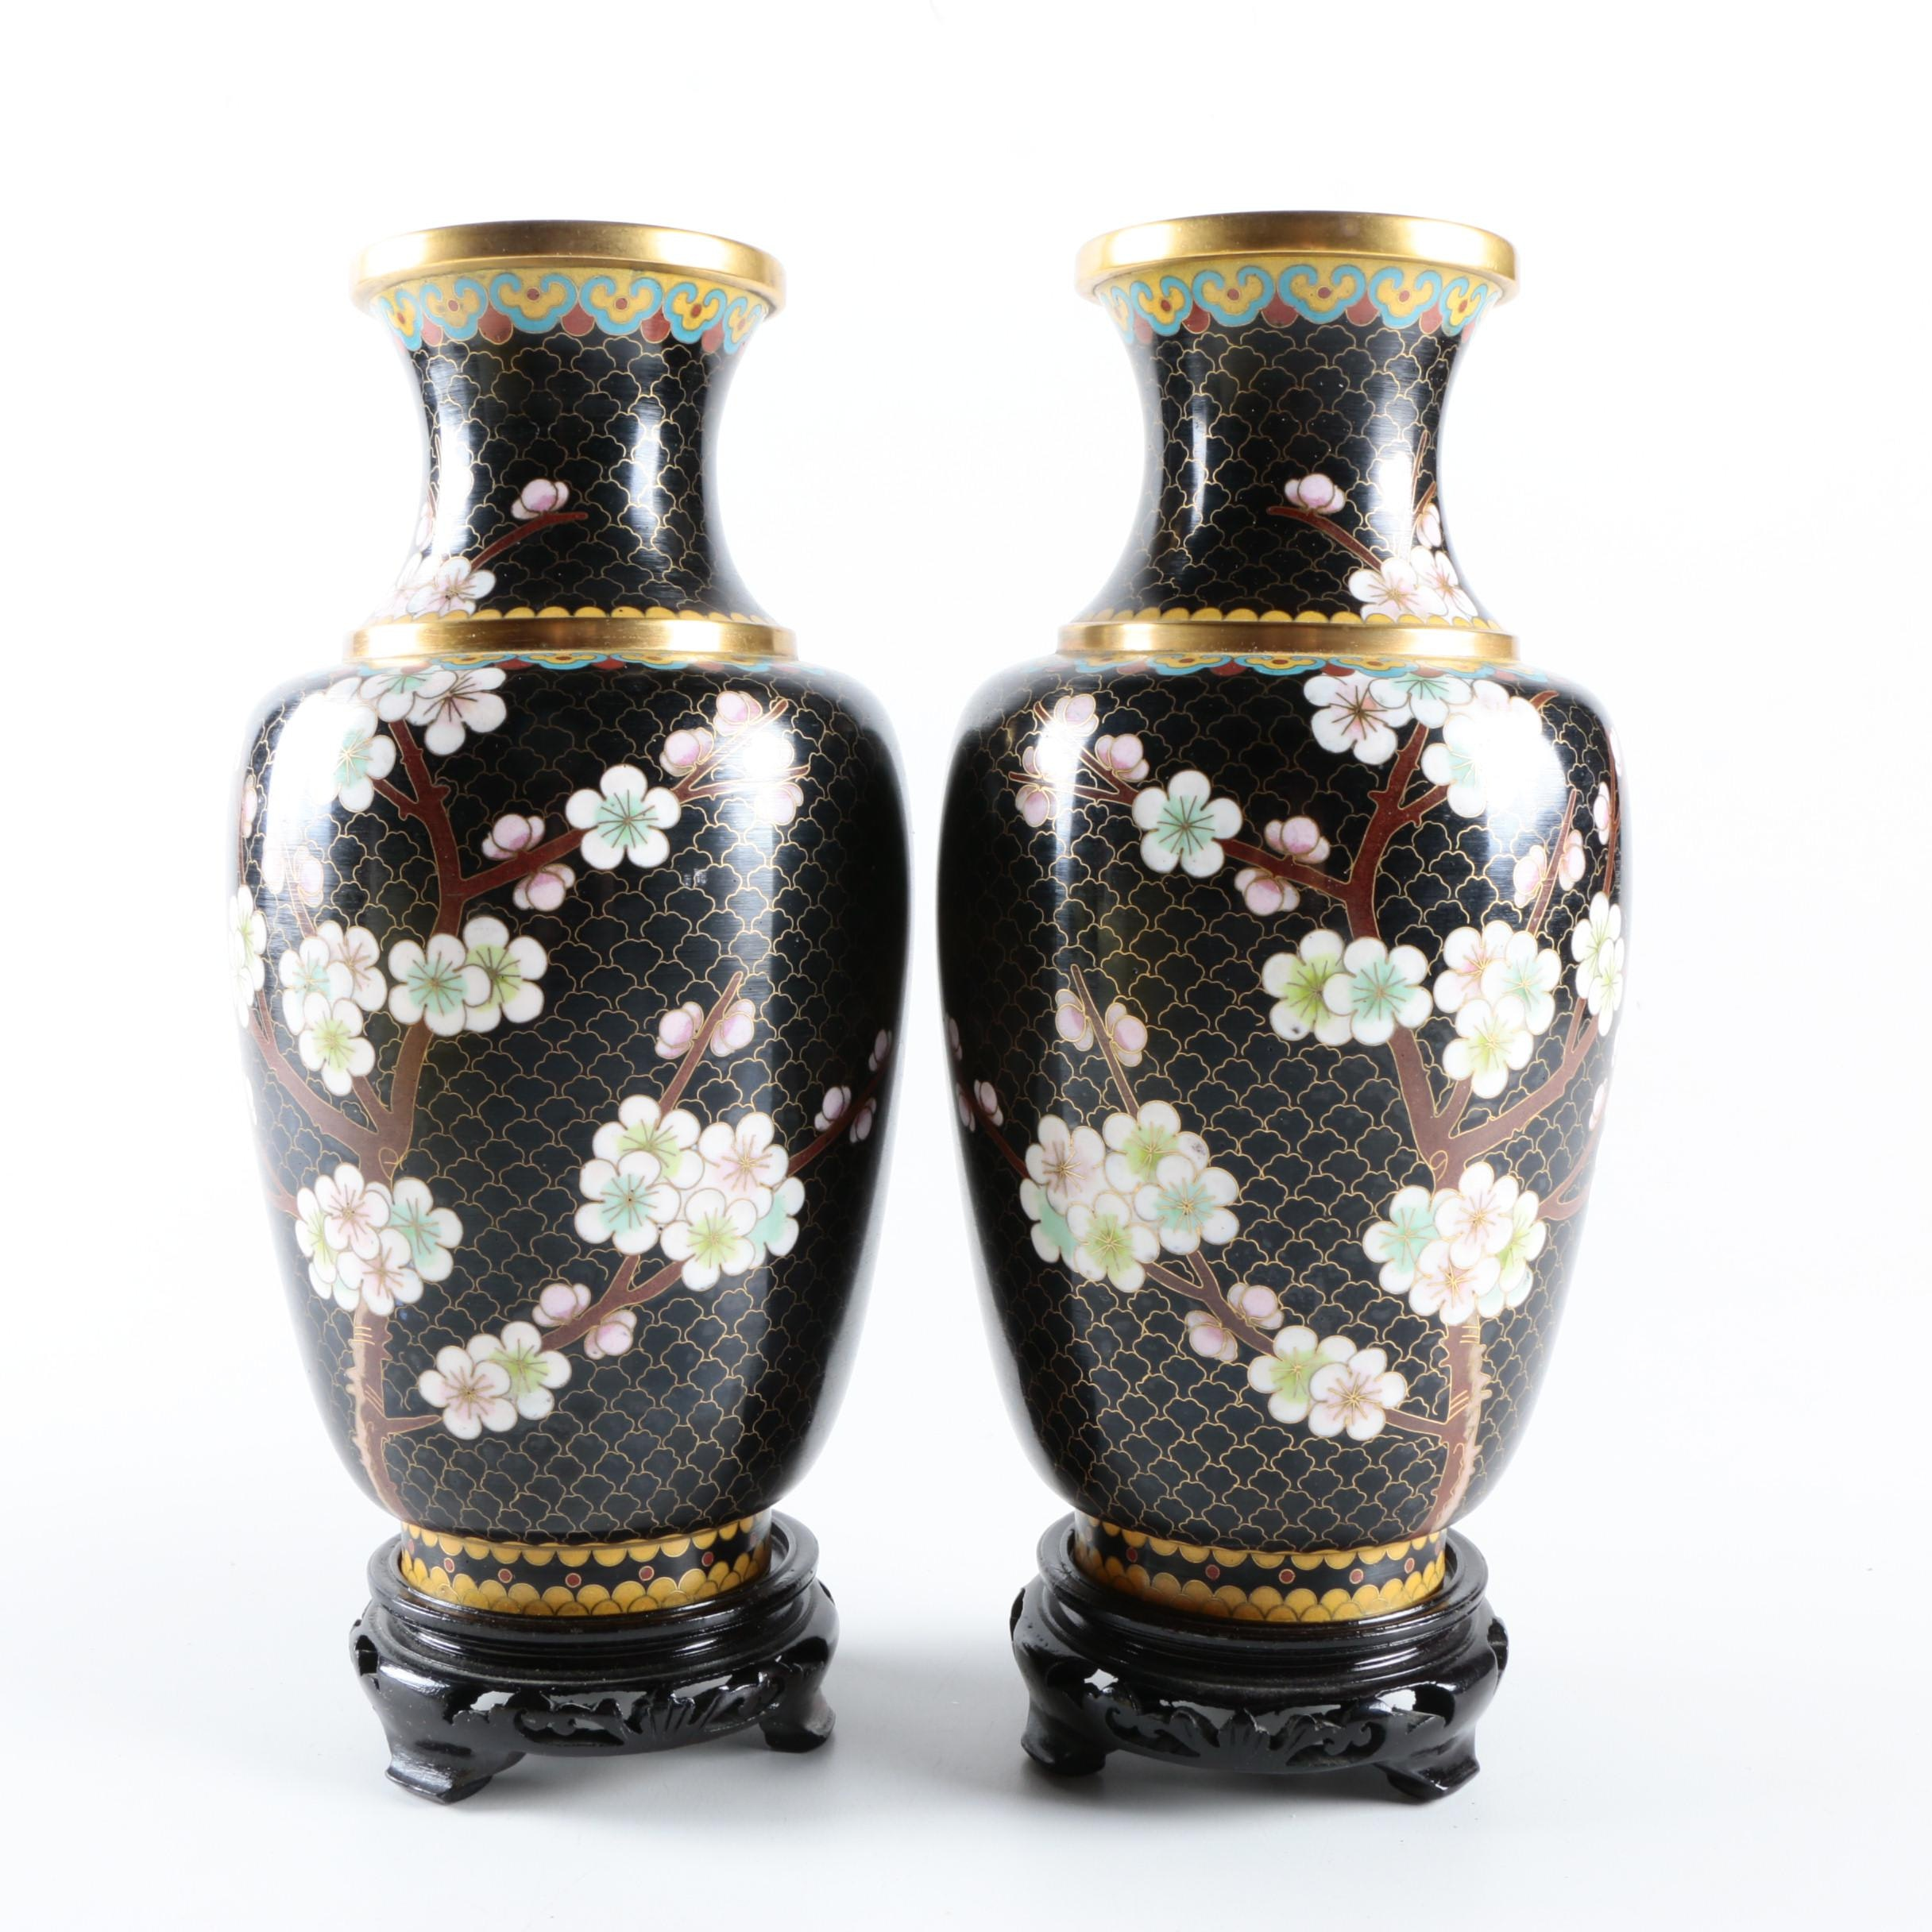 Chinese Cloisonné Vases With Plum Blossoms and Stands